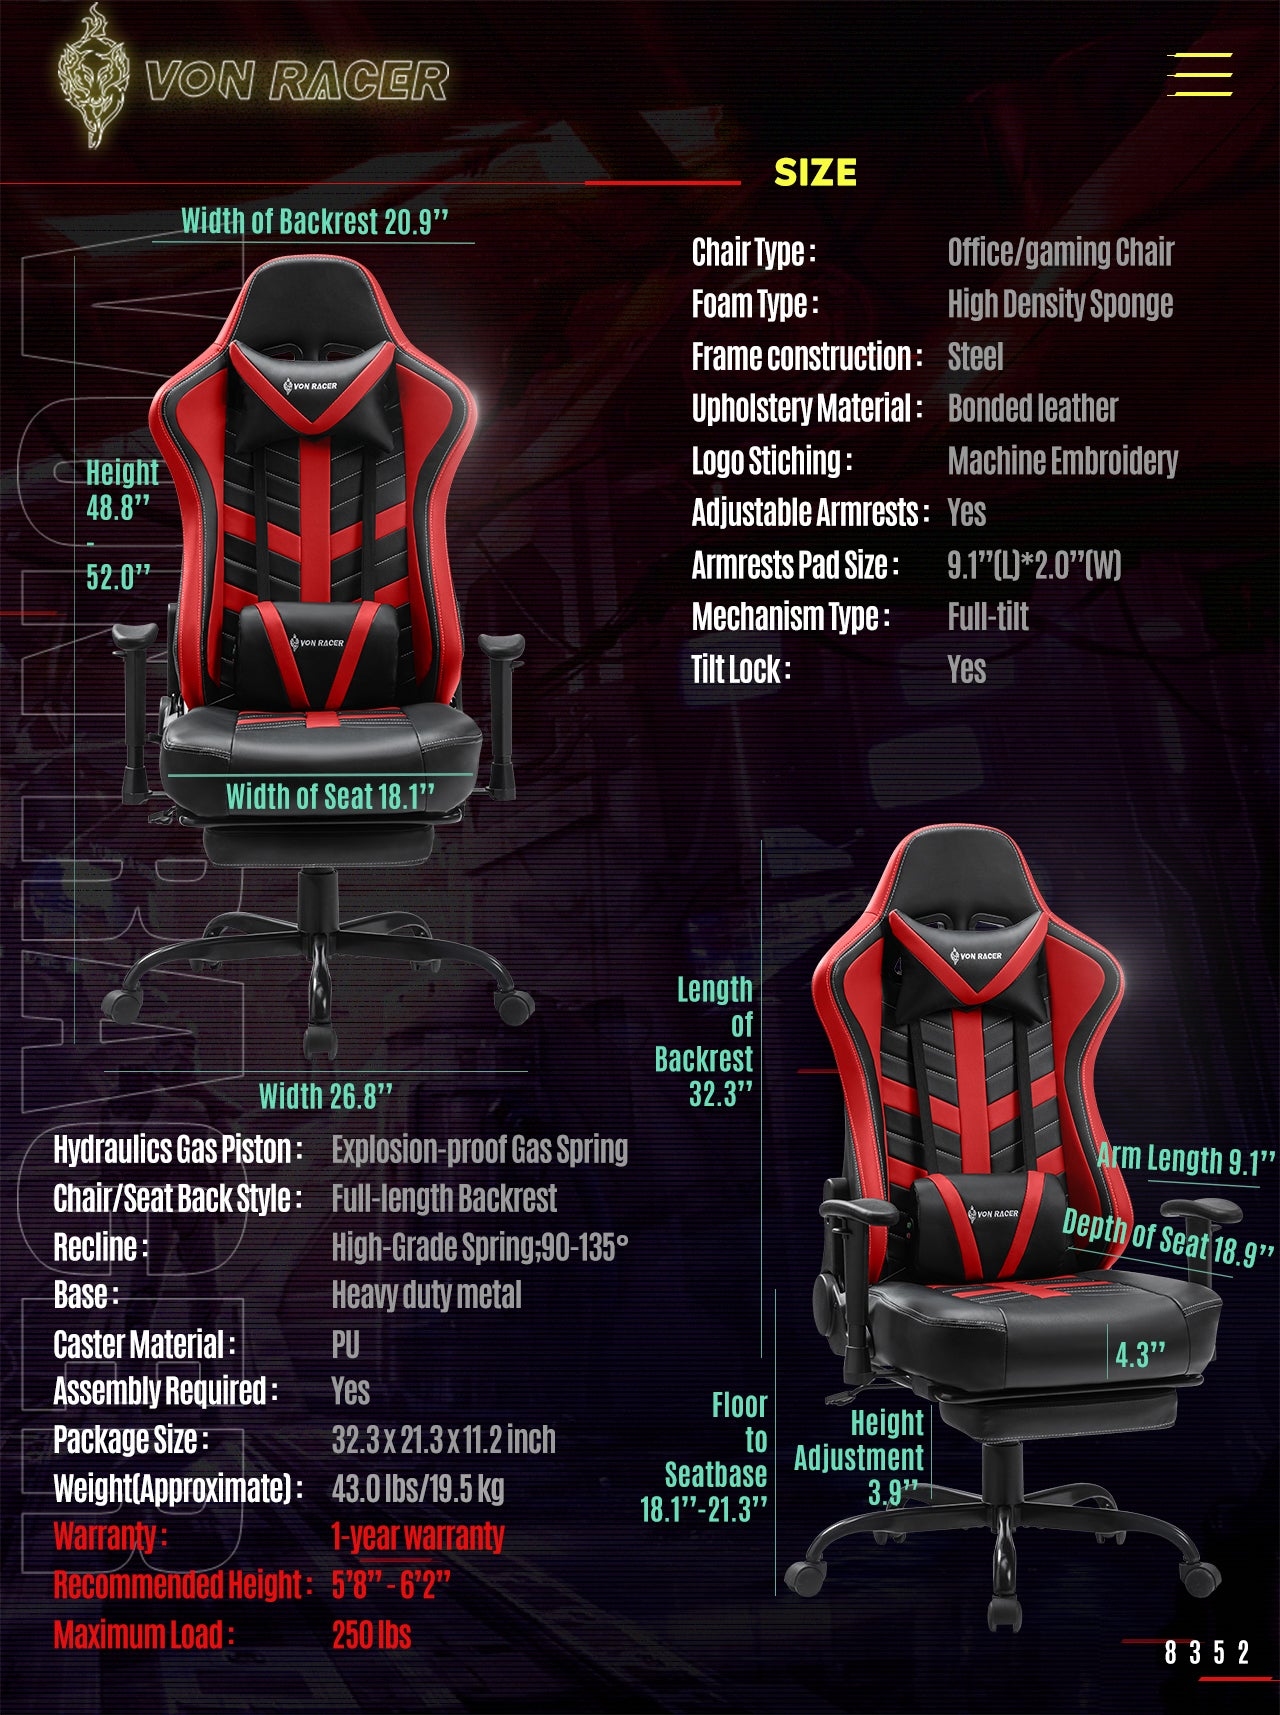 Von Racer Red Gaming Chair BEETLE 2020 Series Specifications